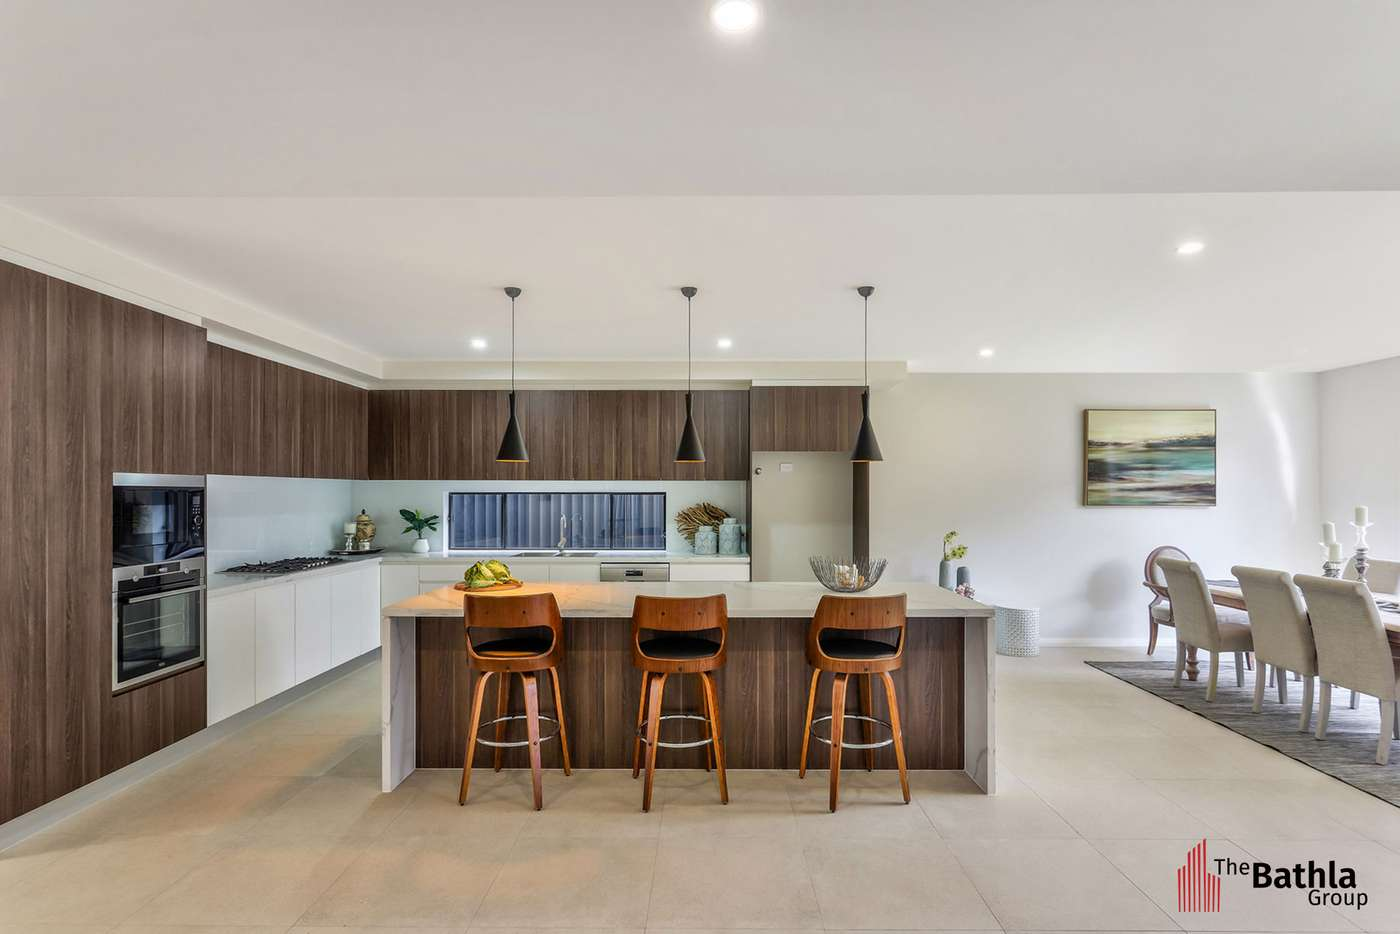 Fifth view of Homely house listing, 43 Braeburn Crescent, Stanhope Gardens NSW 2768